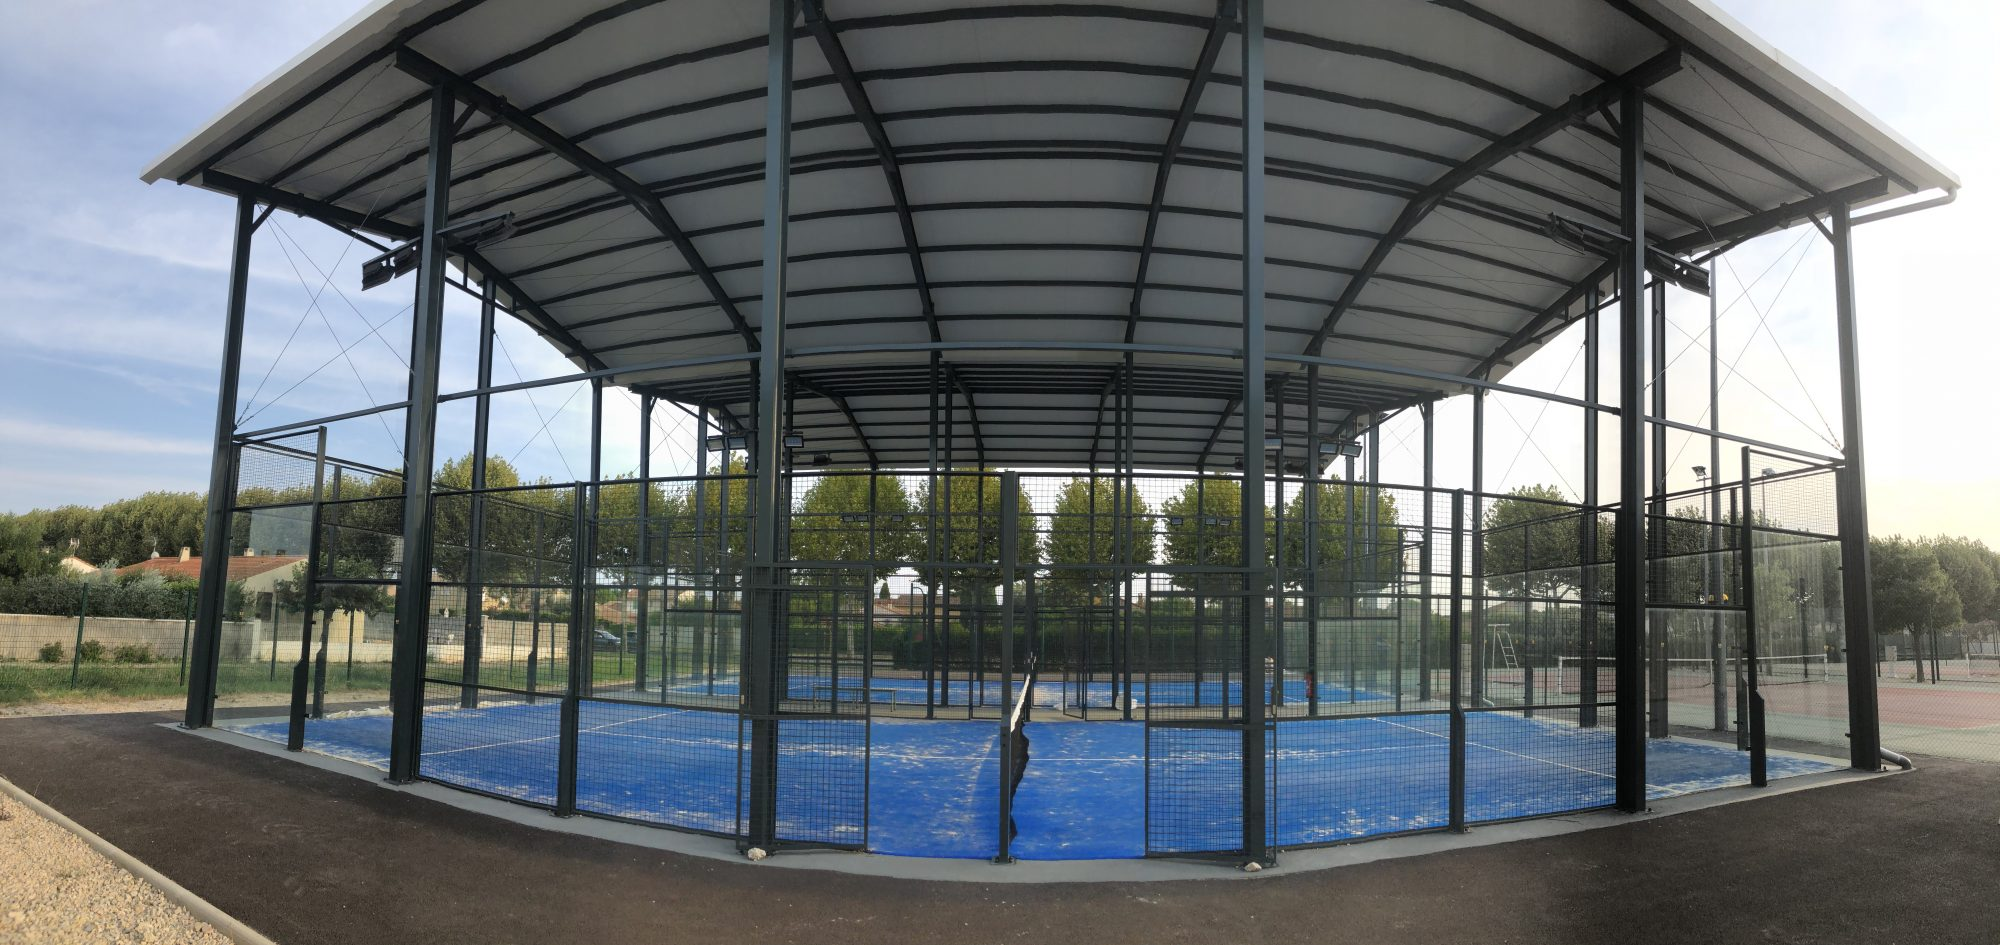 Le Padel Club d'Orange en image